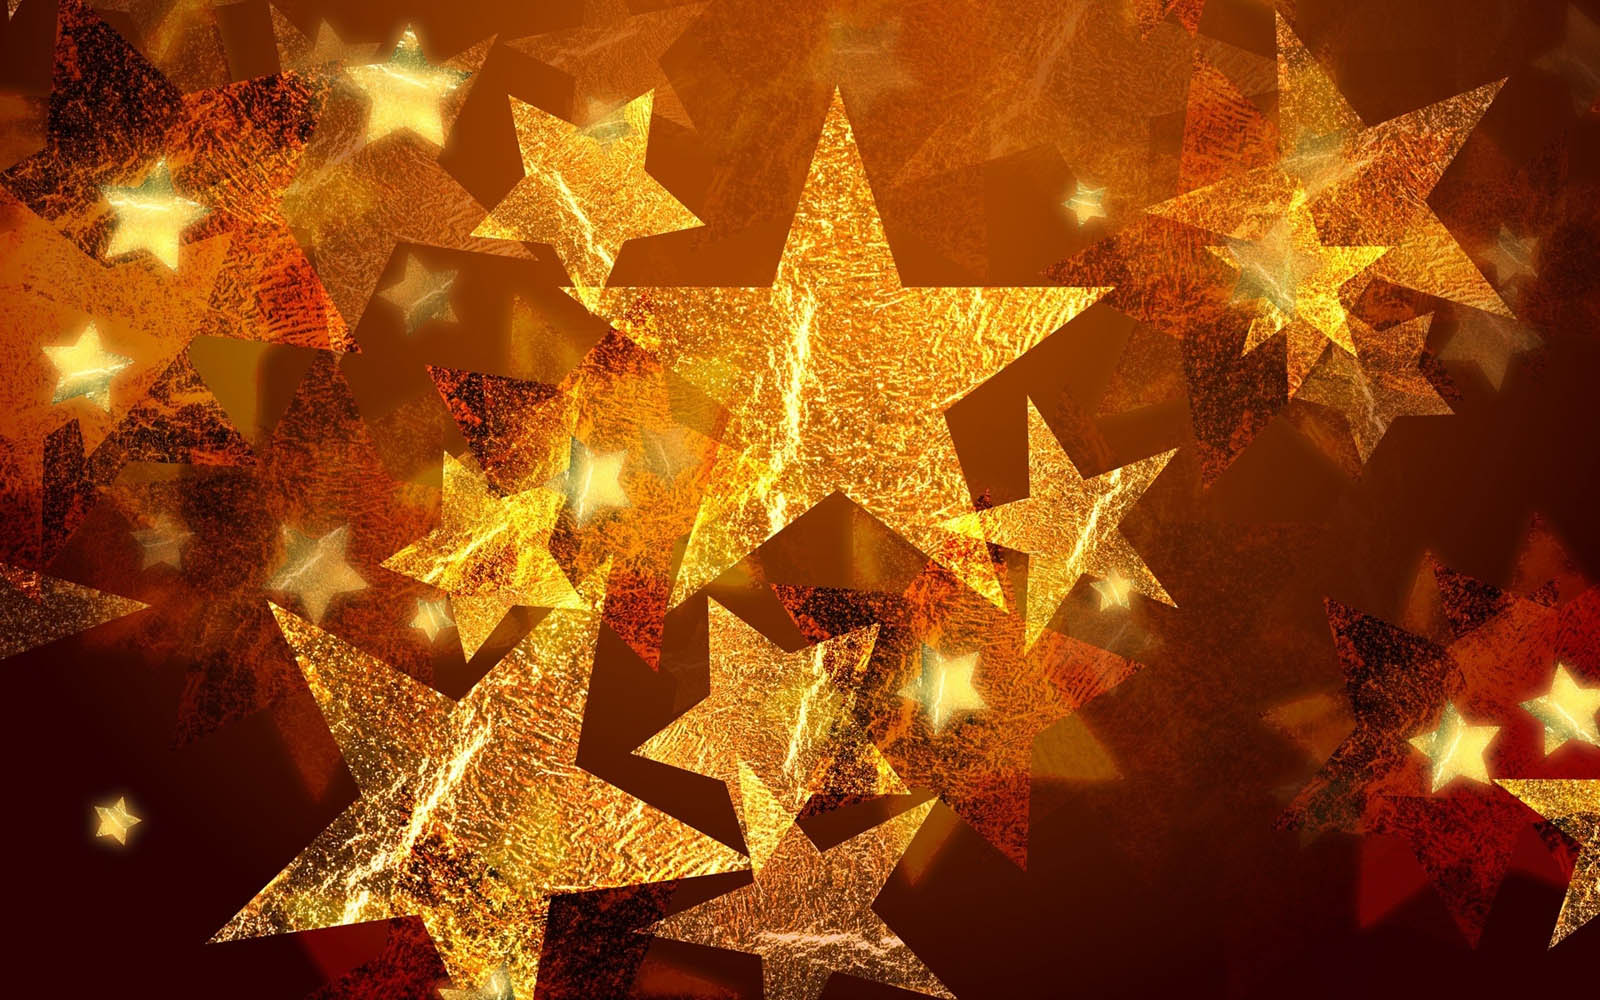 Tag: 3D Stars Wallpapers, Backgrounds, Photos, Pictures, and Images ...